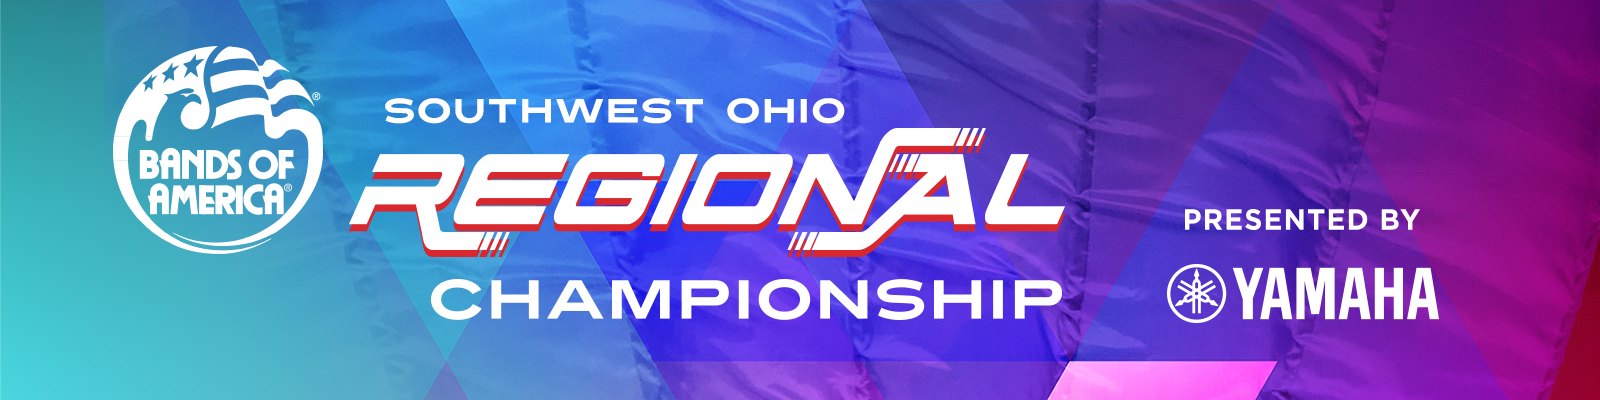 Bands of America Soutwest Ohio Regional Championship Presented by Yamaha